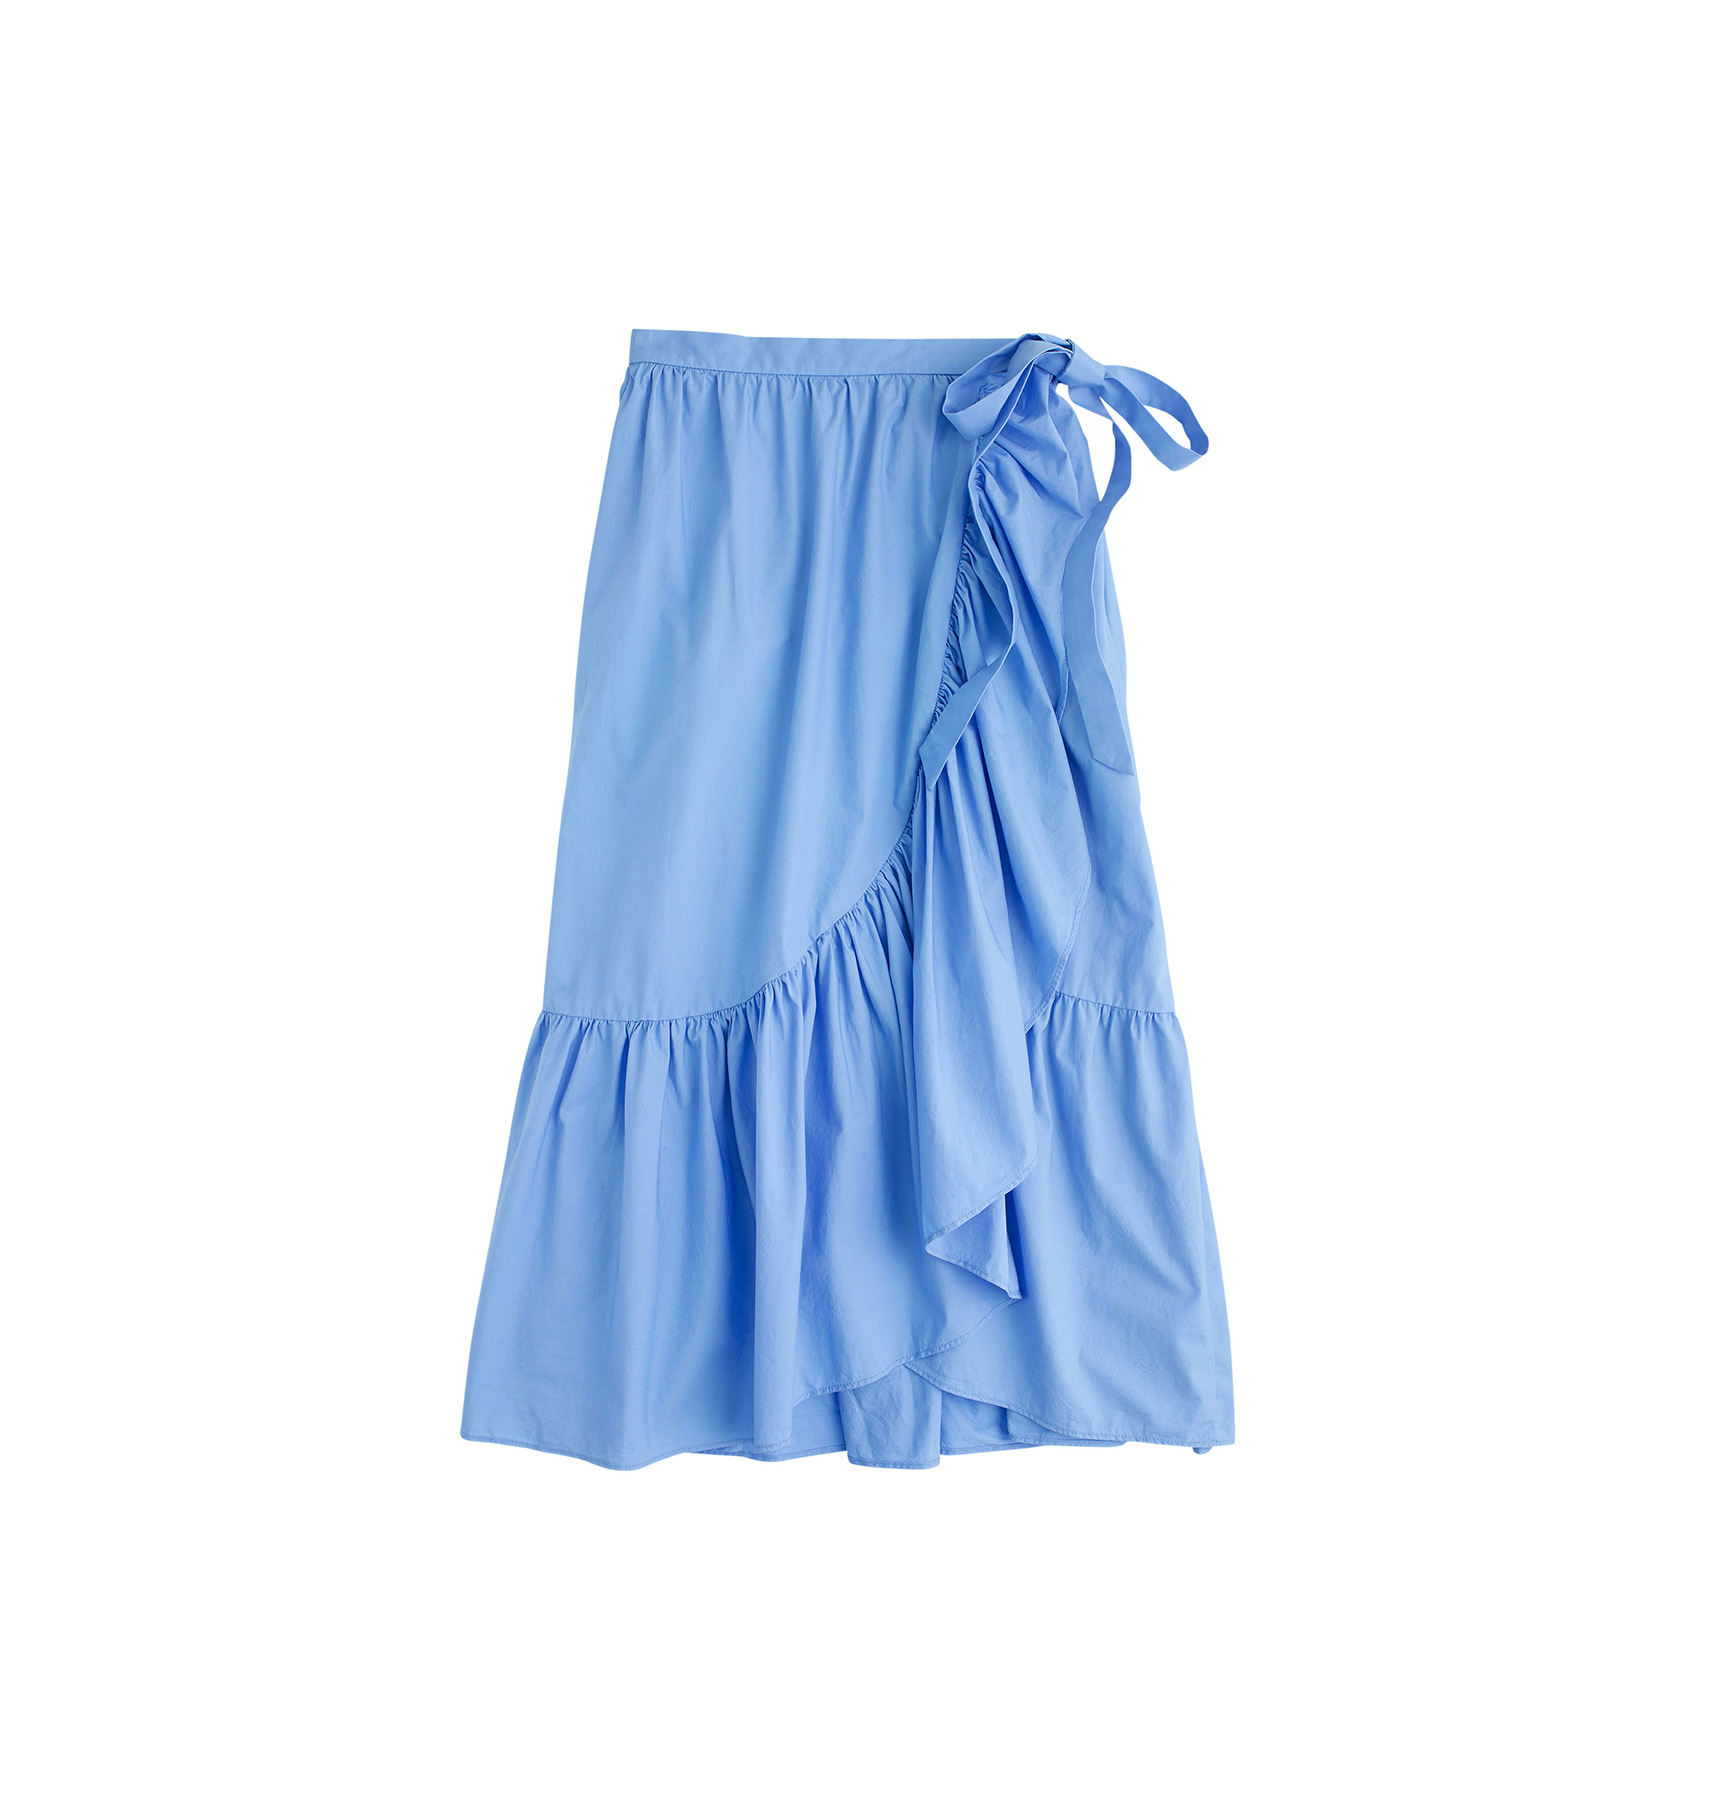 J. Crew Ruffle Wrap Skirt in Cotton Poplin